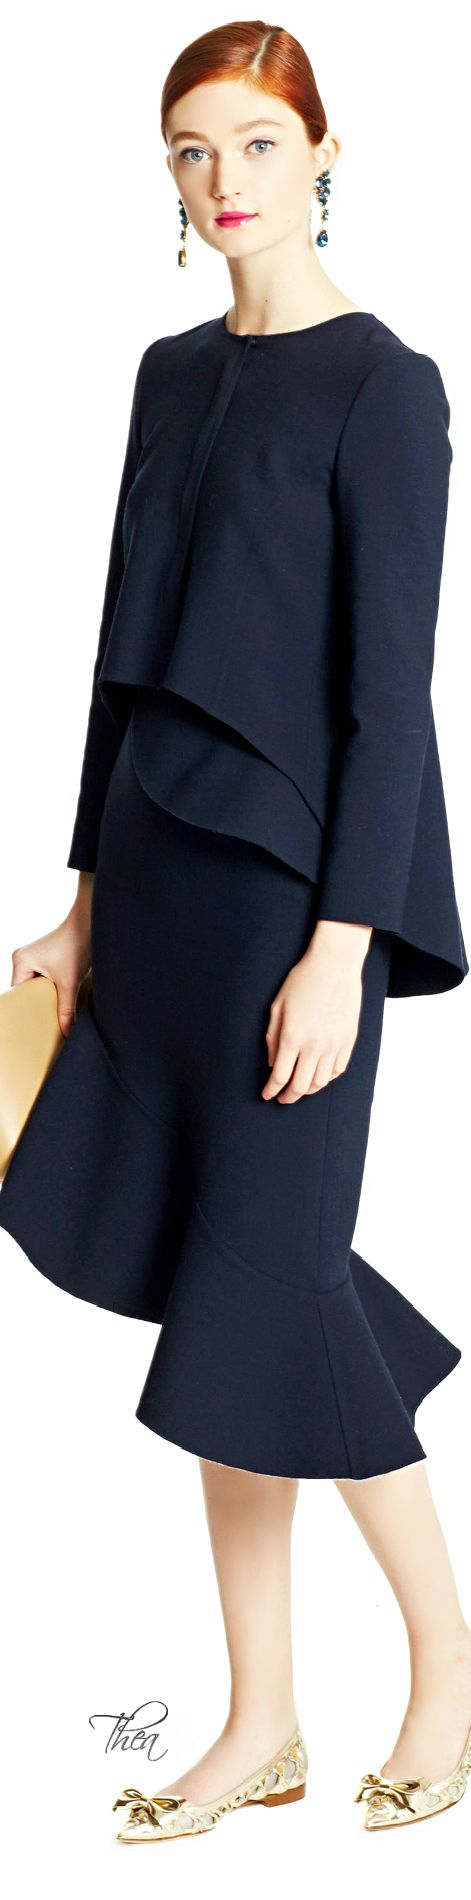 #Modest doesn't mean frumpy. www.ColleenHammond.com  Oscar de la Renta ● FW 2015